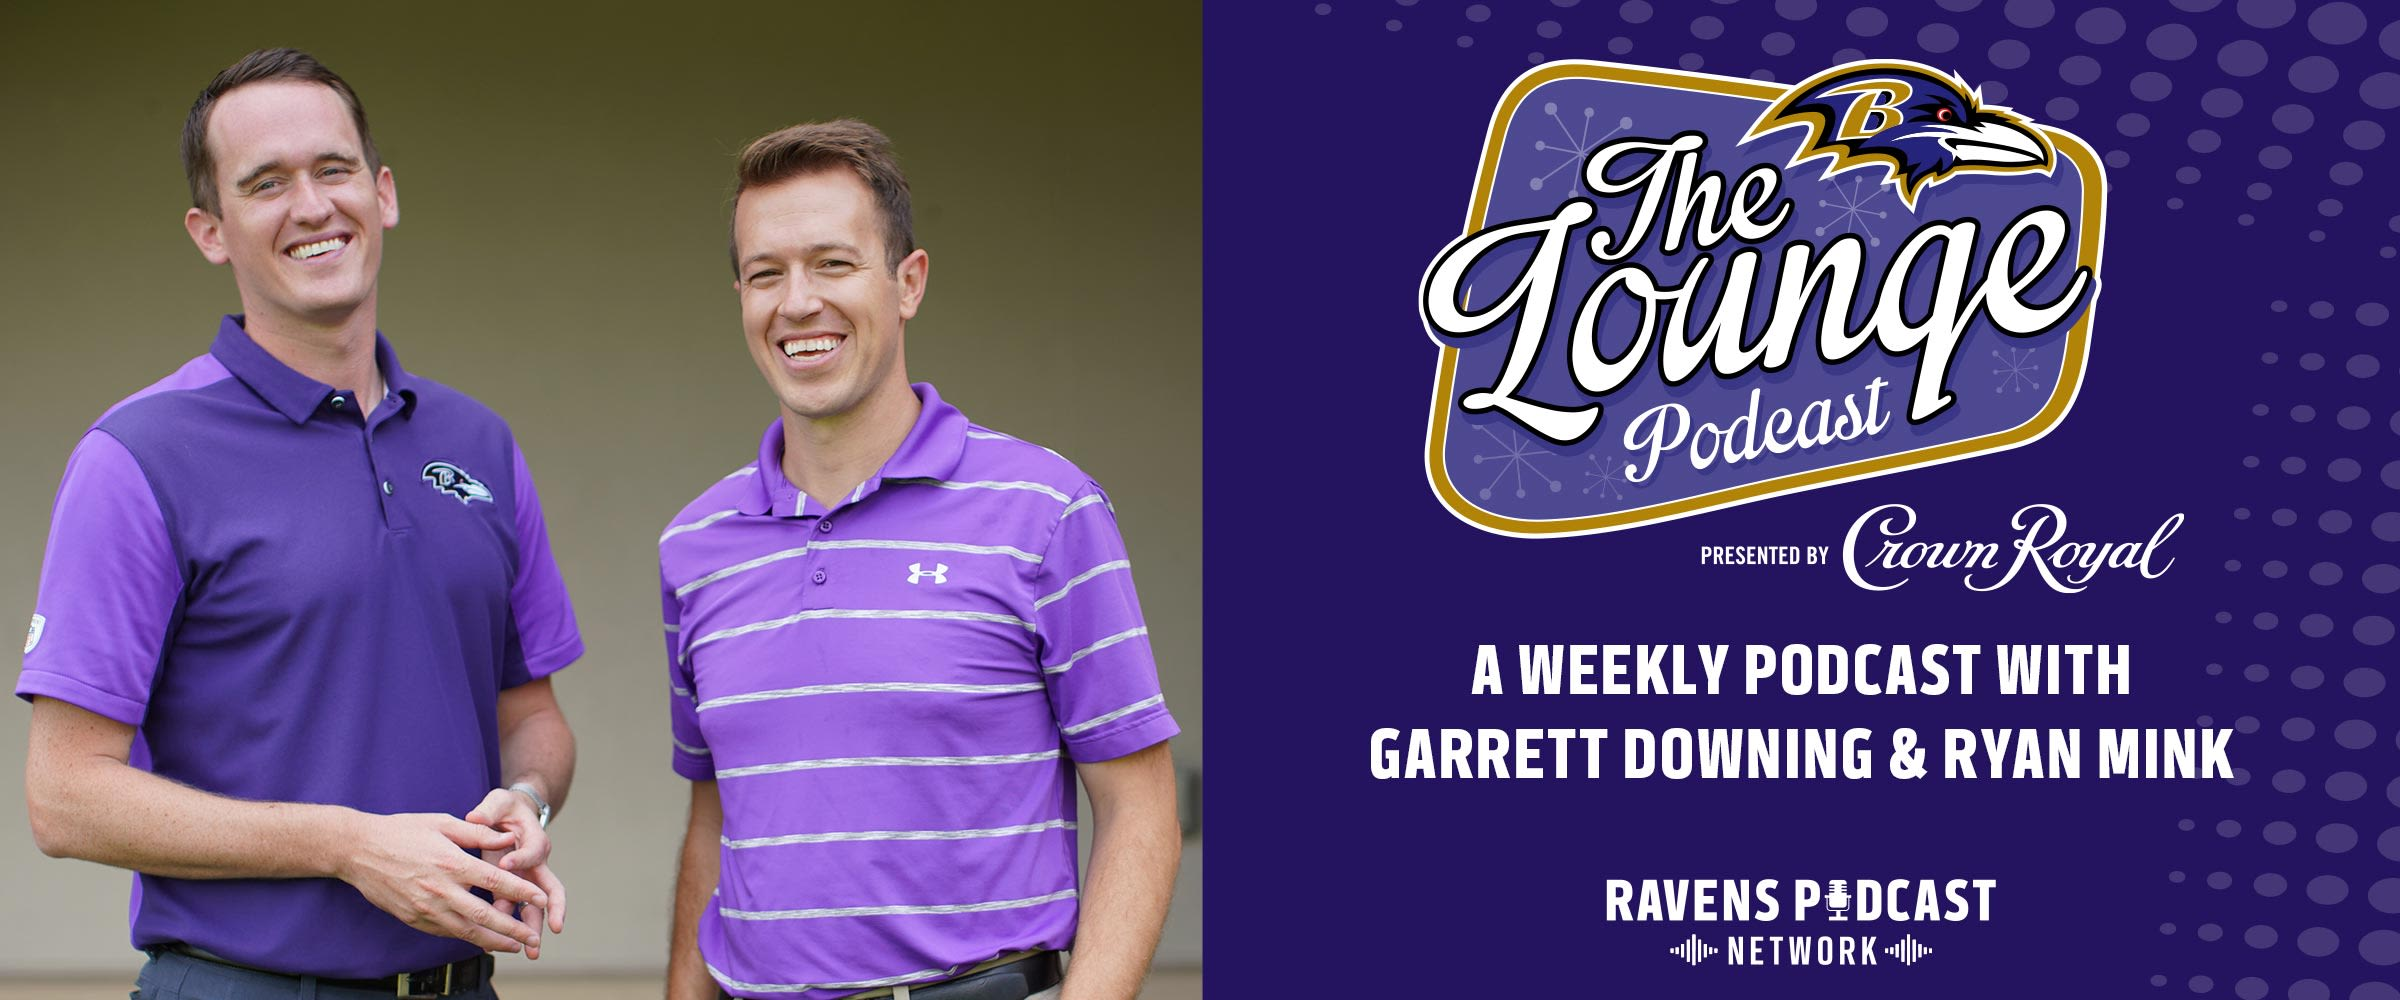 The Lounge Podcast presented by Crown Royal  A weekly podcast with Garrett Downing and Ryan Mink  Available on the Ravens Podcast Network